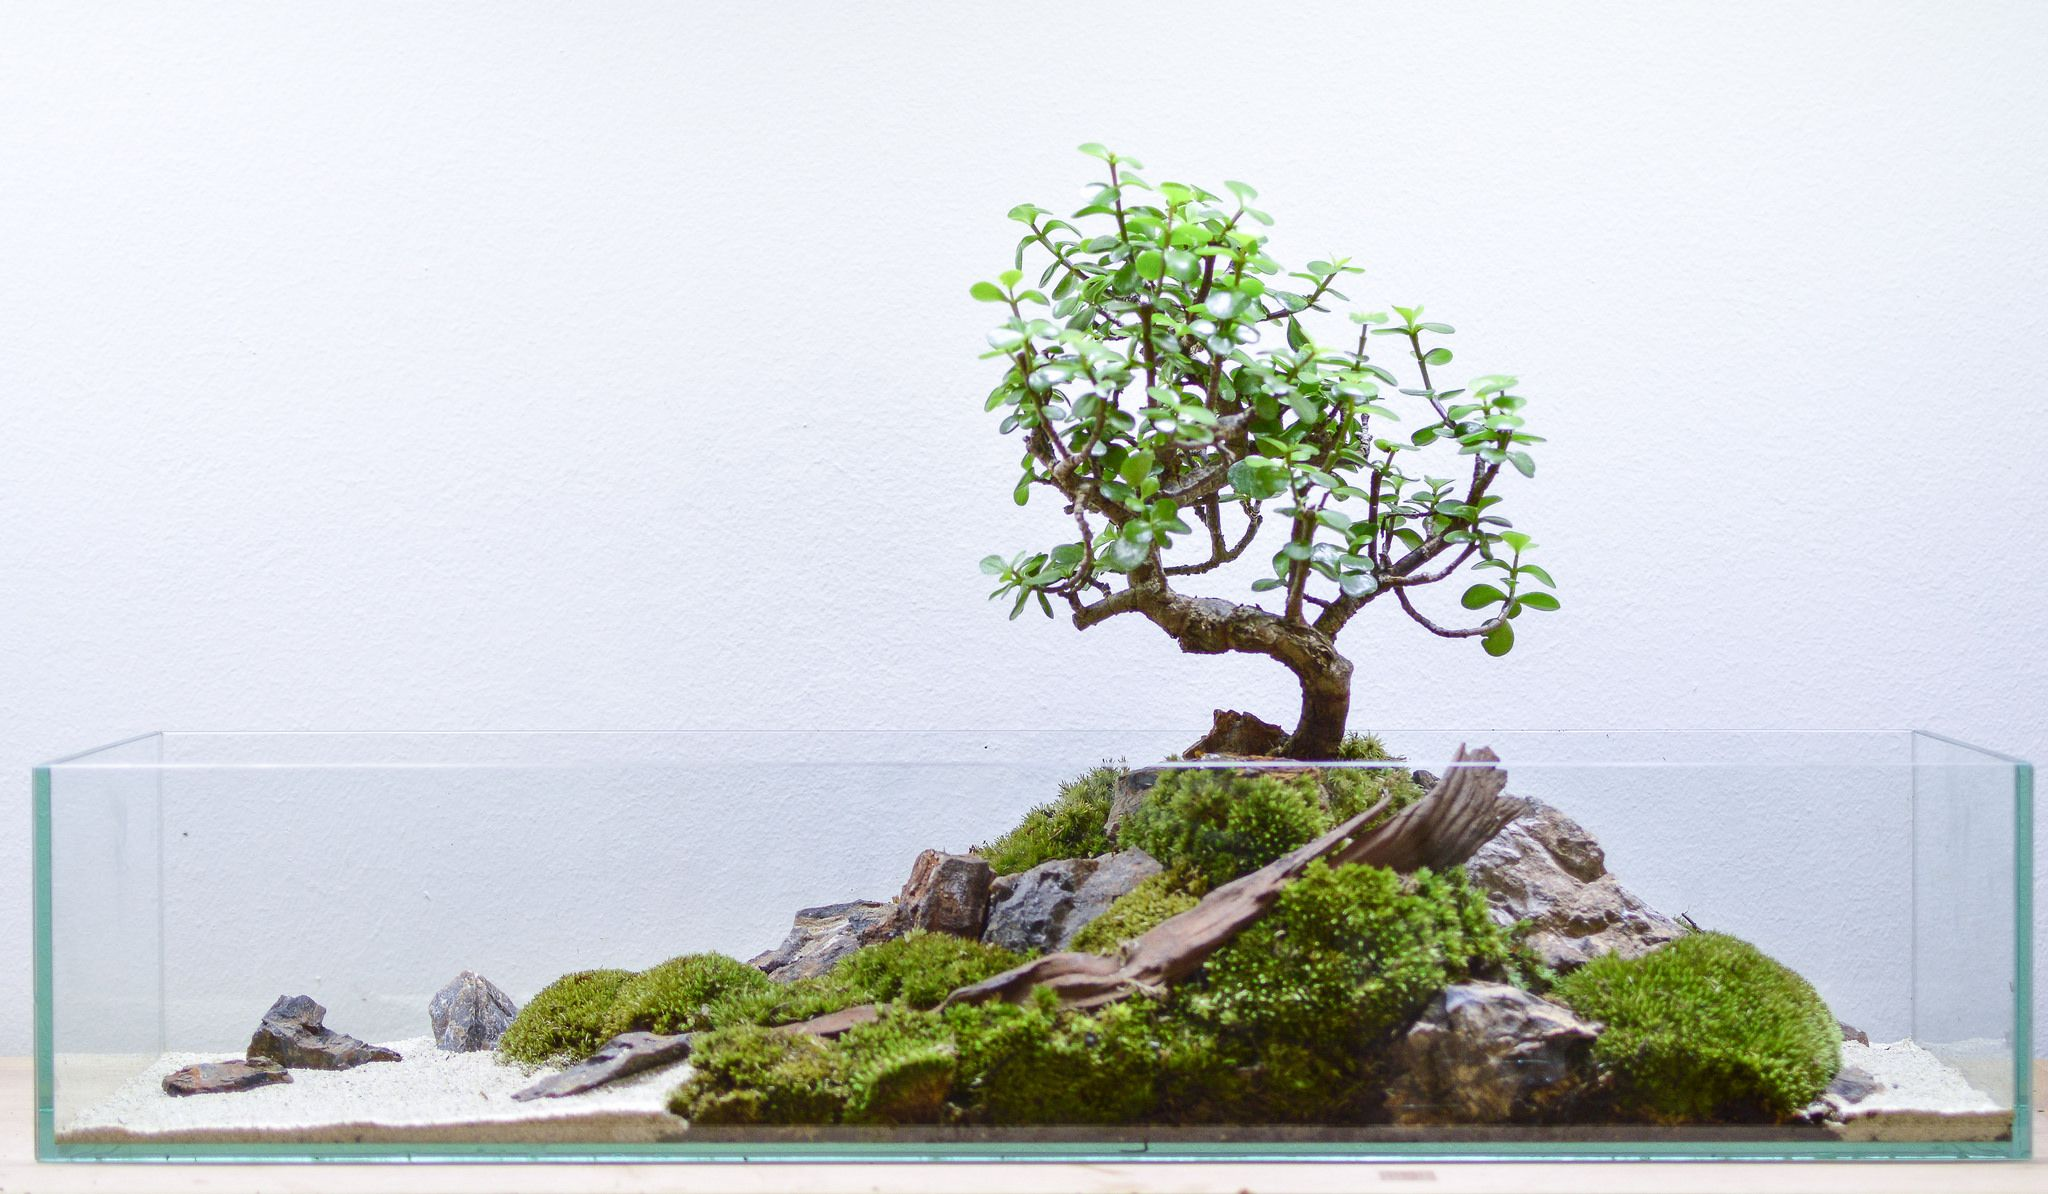 Cura Del Ficus Benjamin long terrarium with a portulacaria afra bonsai (with images